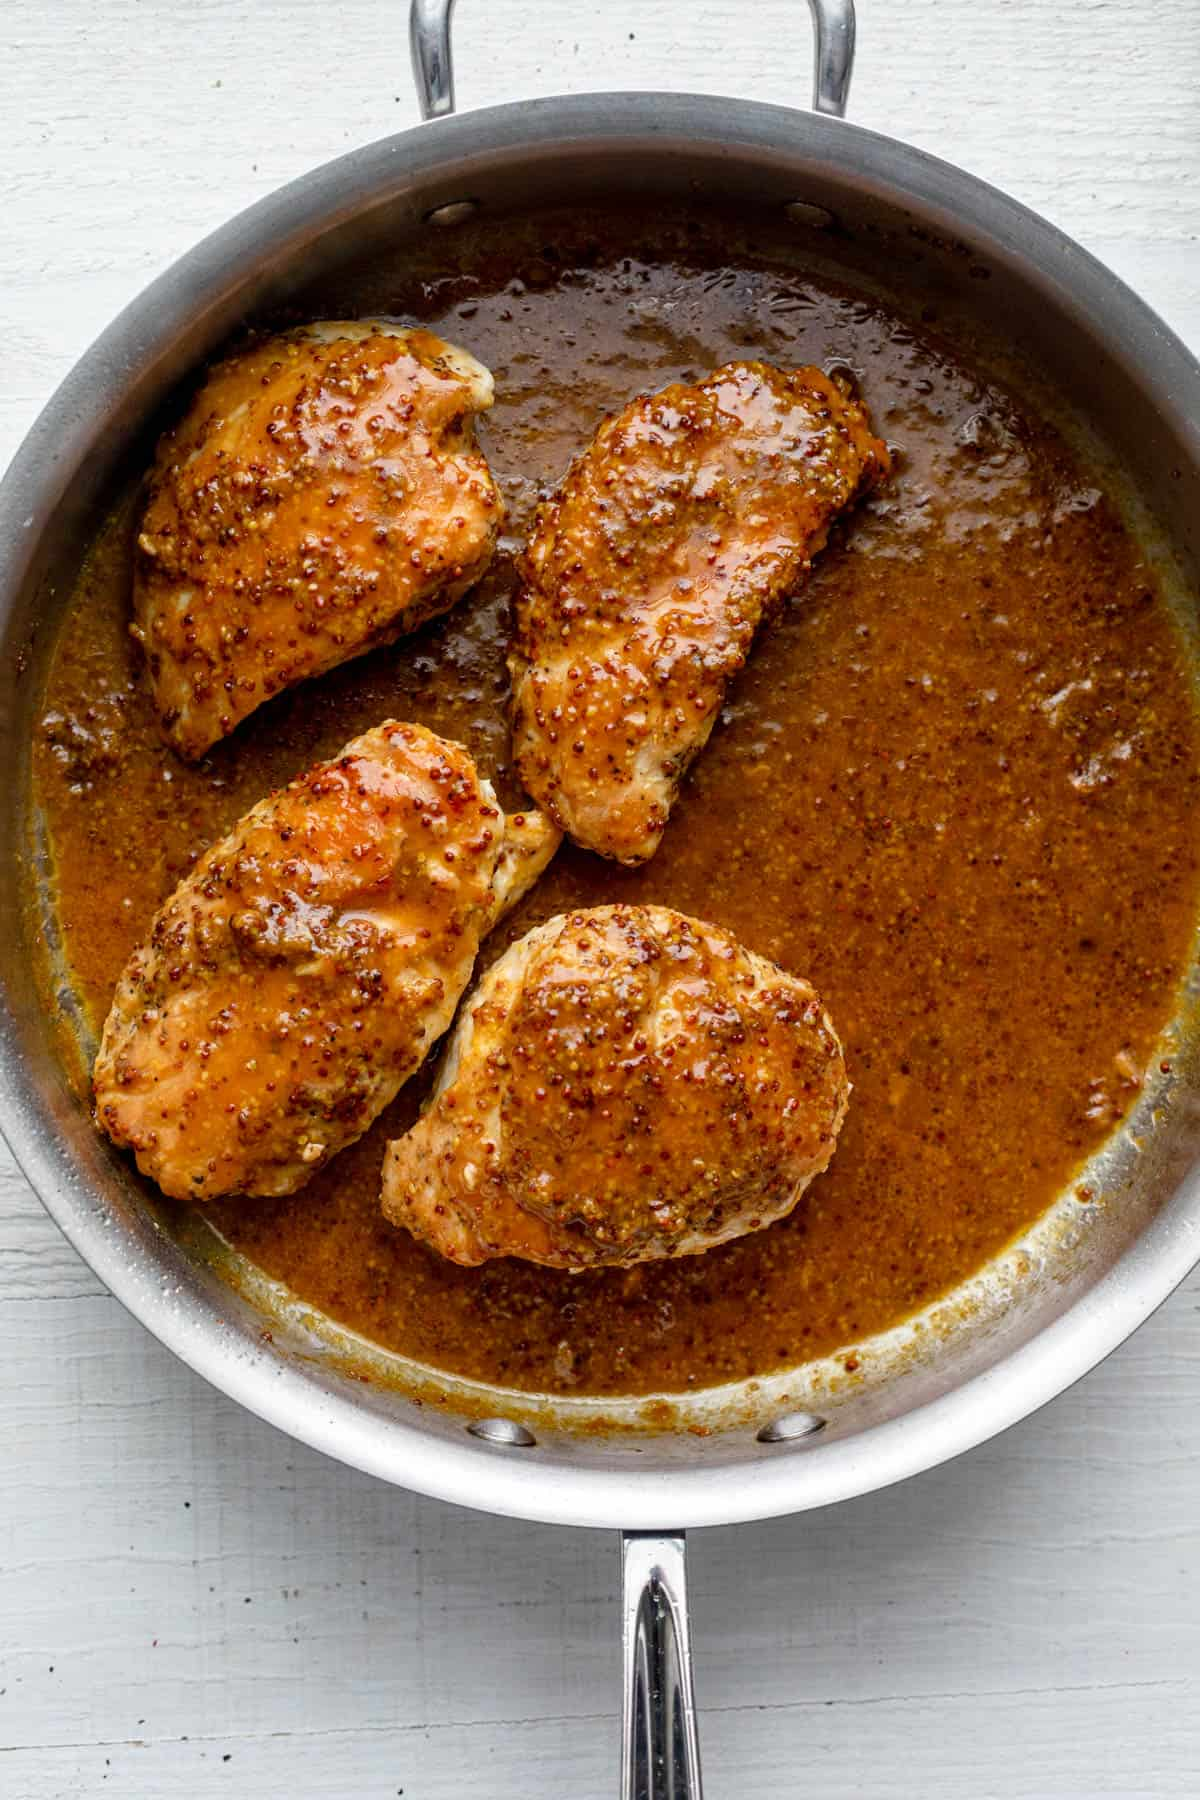 Completed honey mustard chicken in pan with sauce